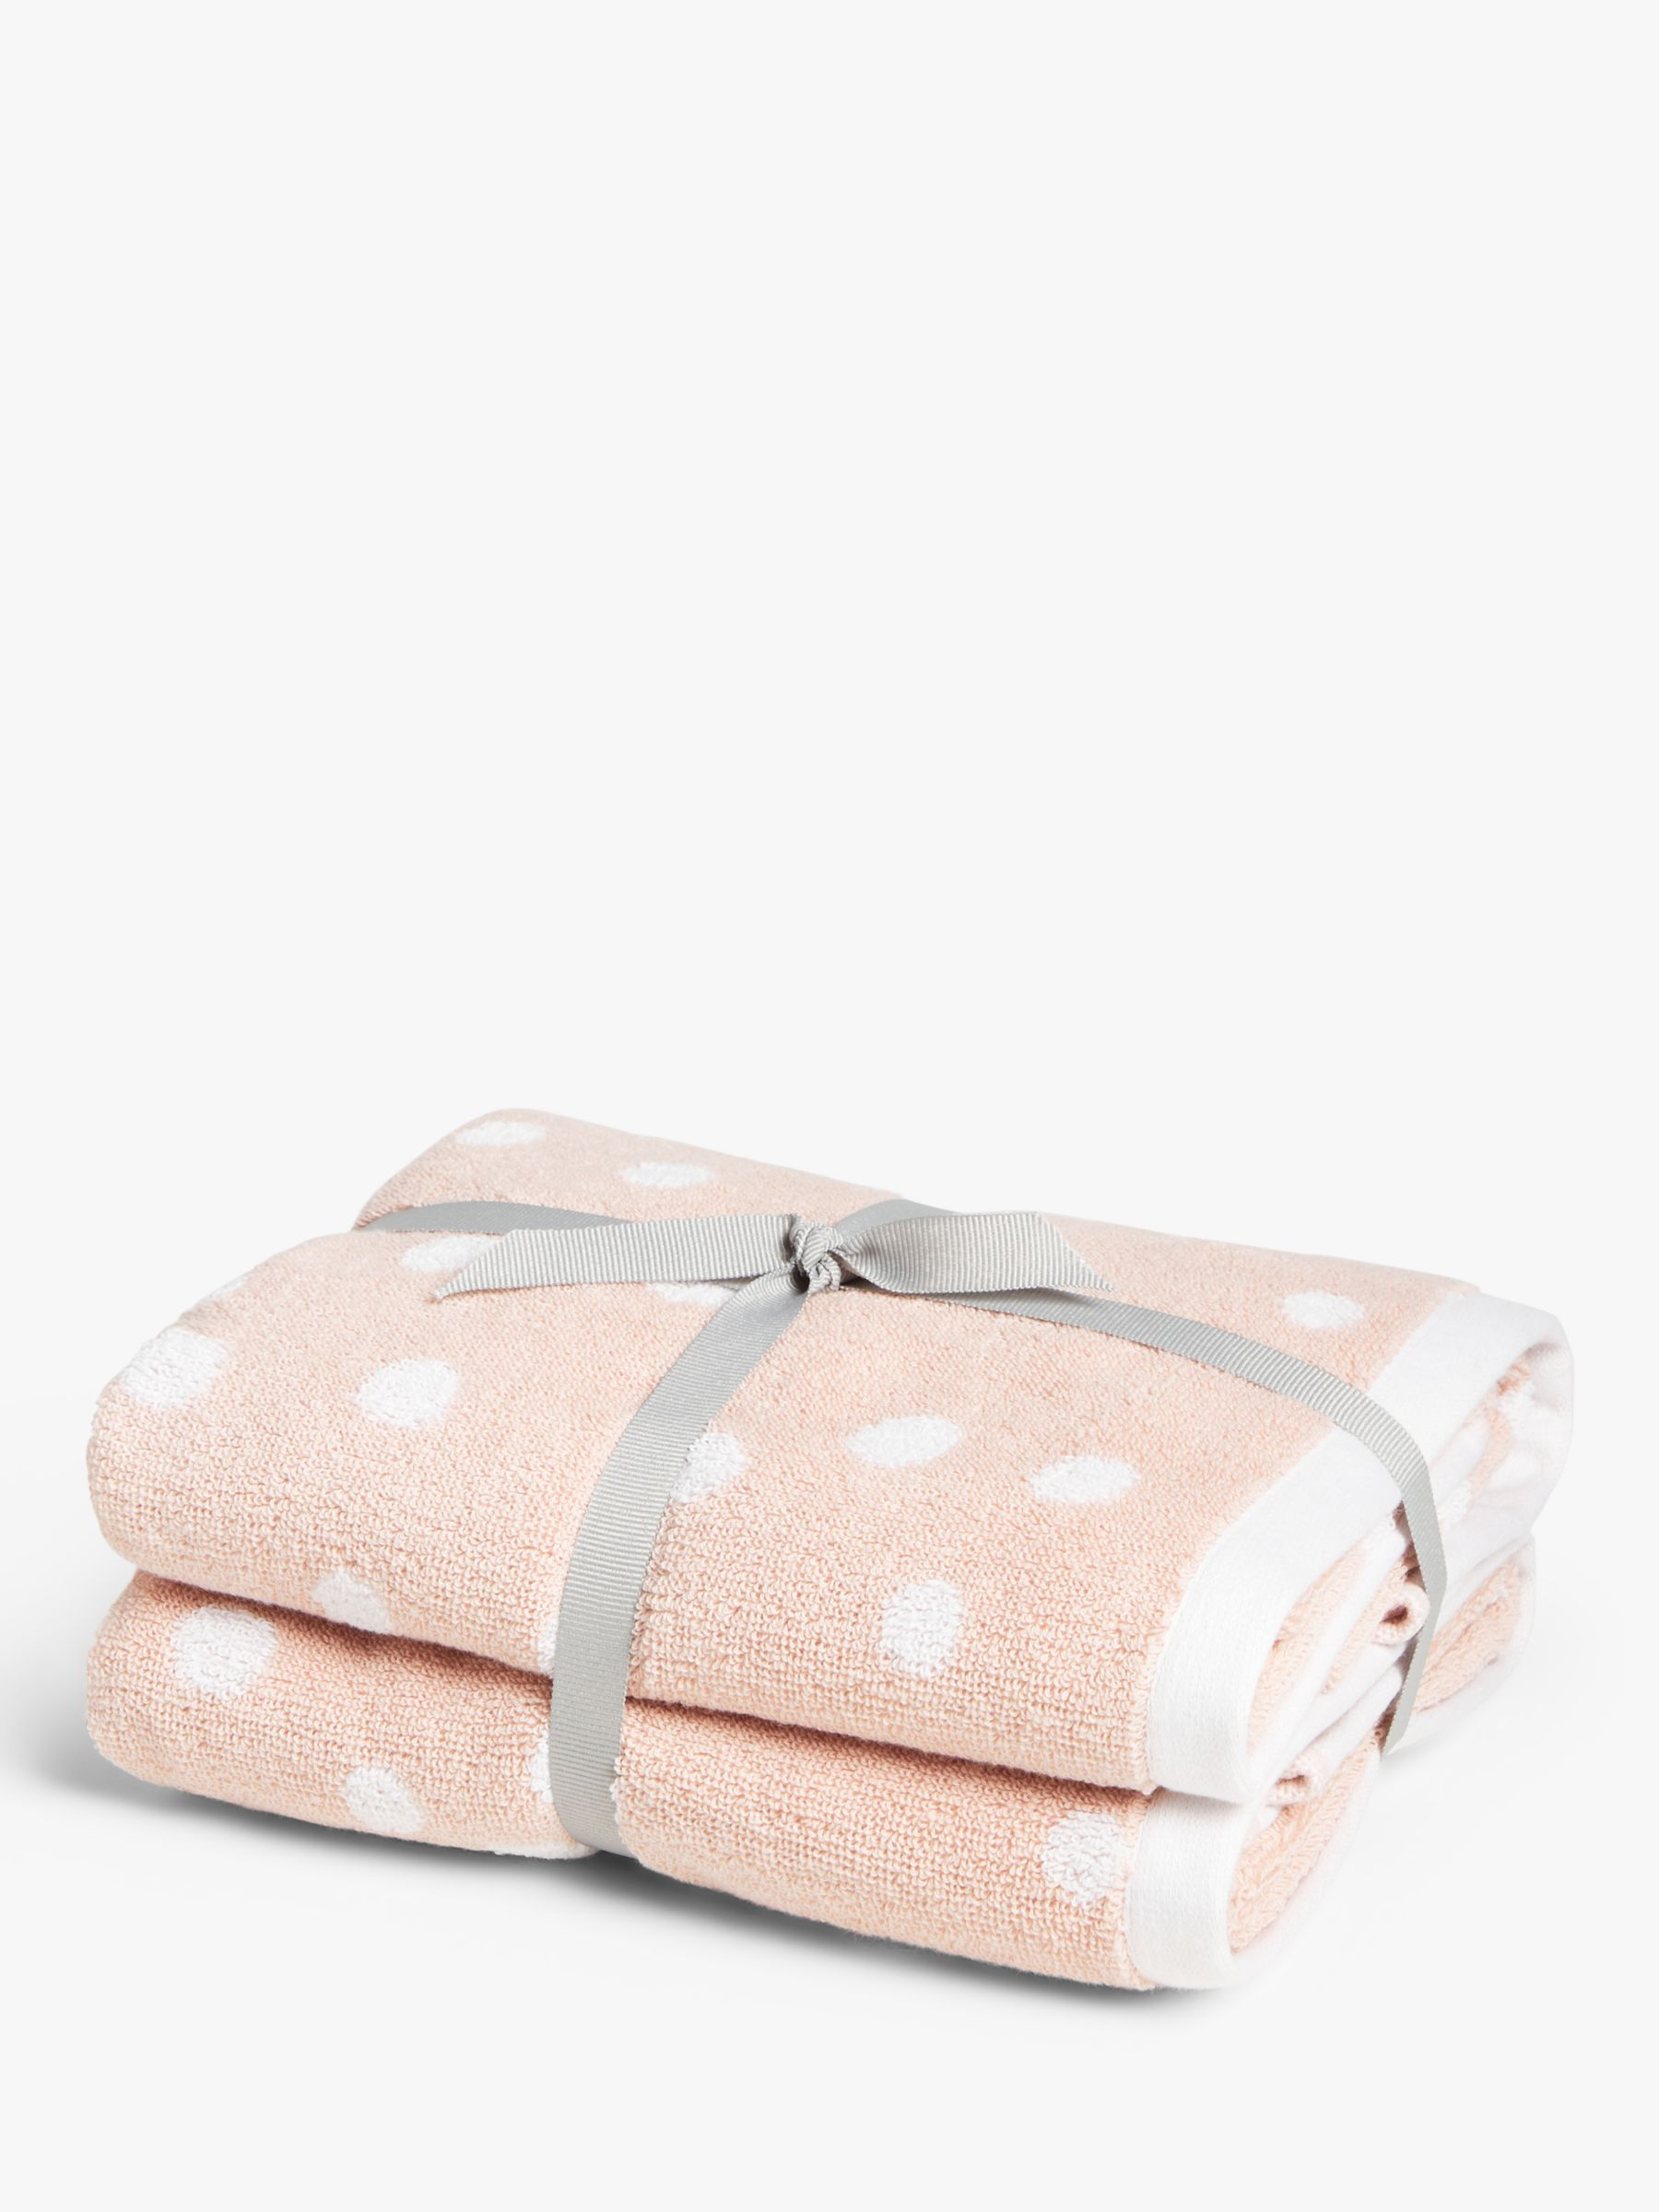 ANYDAY John Lewis & Partners Spot Hand Towels, Pack of 2, Watermelon